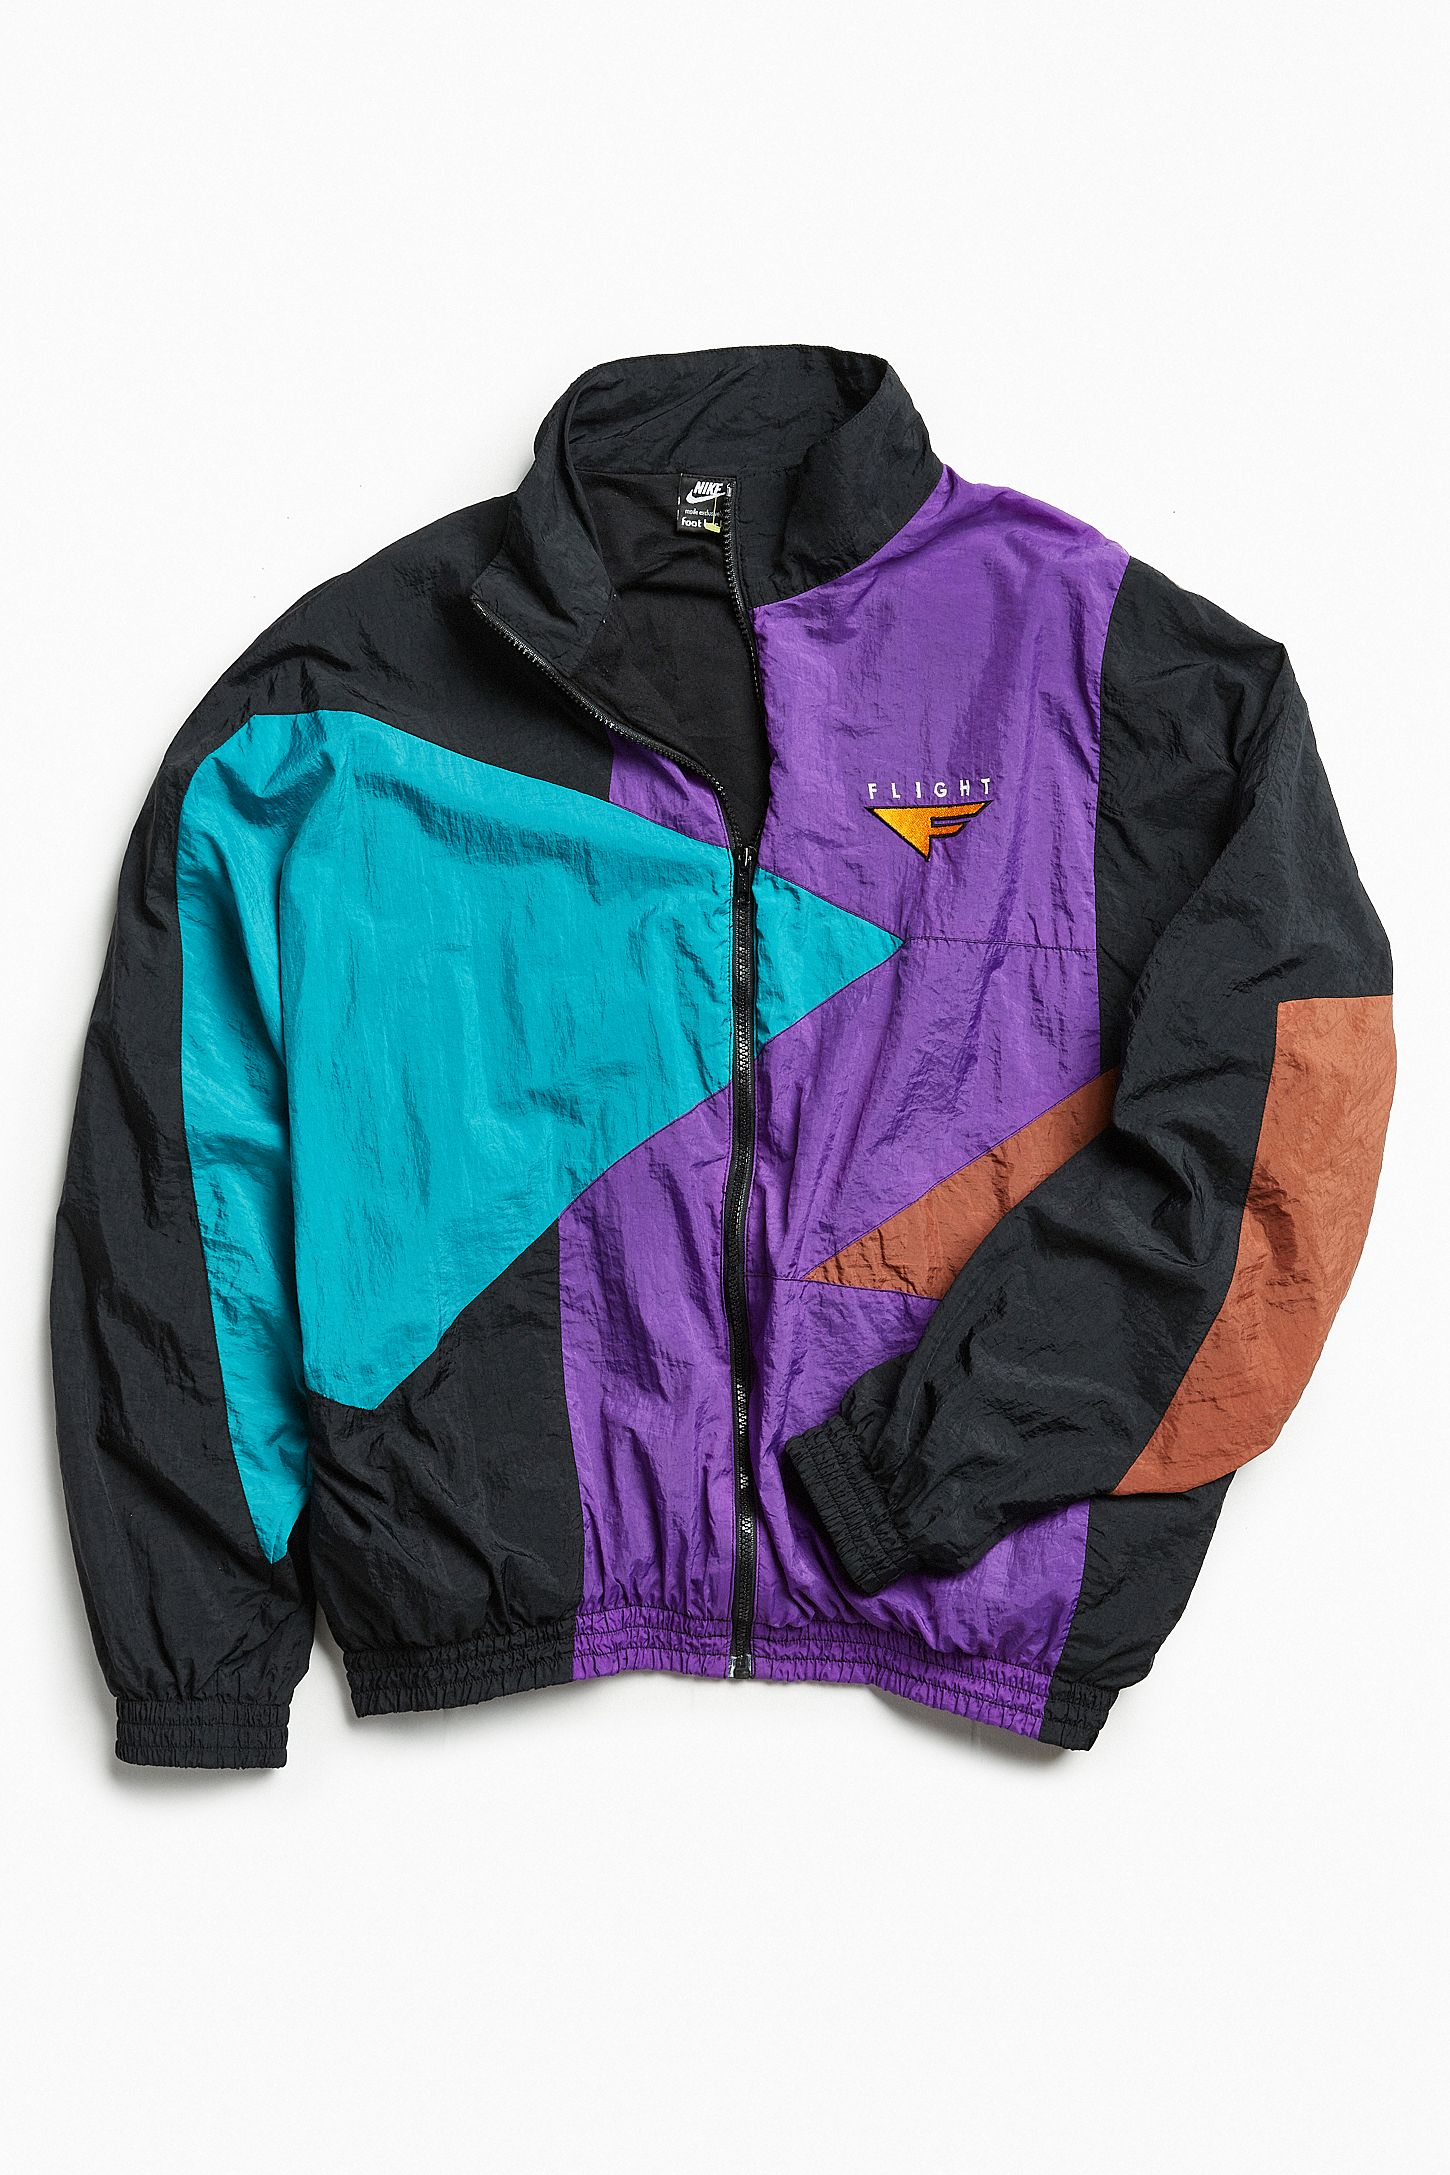 Vintage Nike Purple Windbreaker Jacket  4fdc8ee92